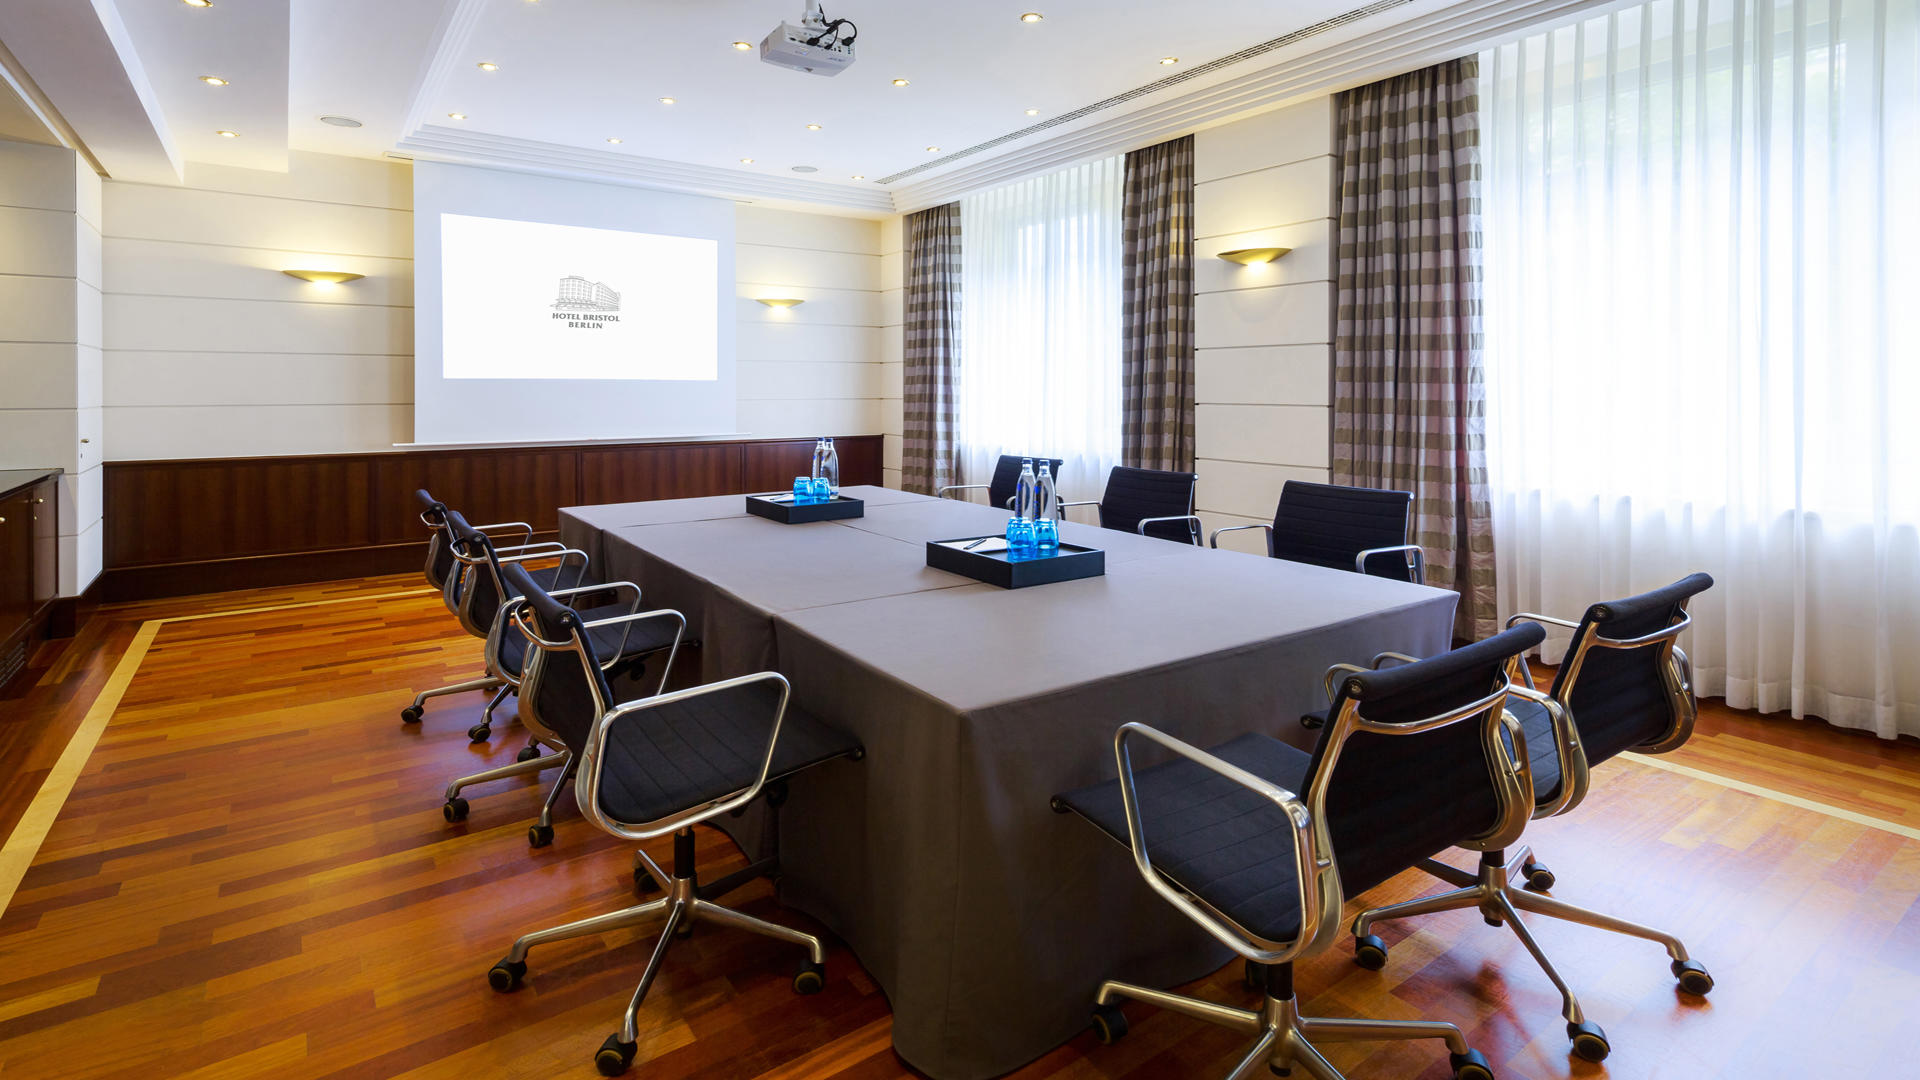 HotelBristolBerlin_Meeting_Room